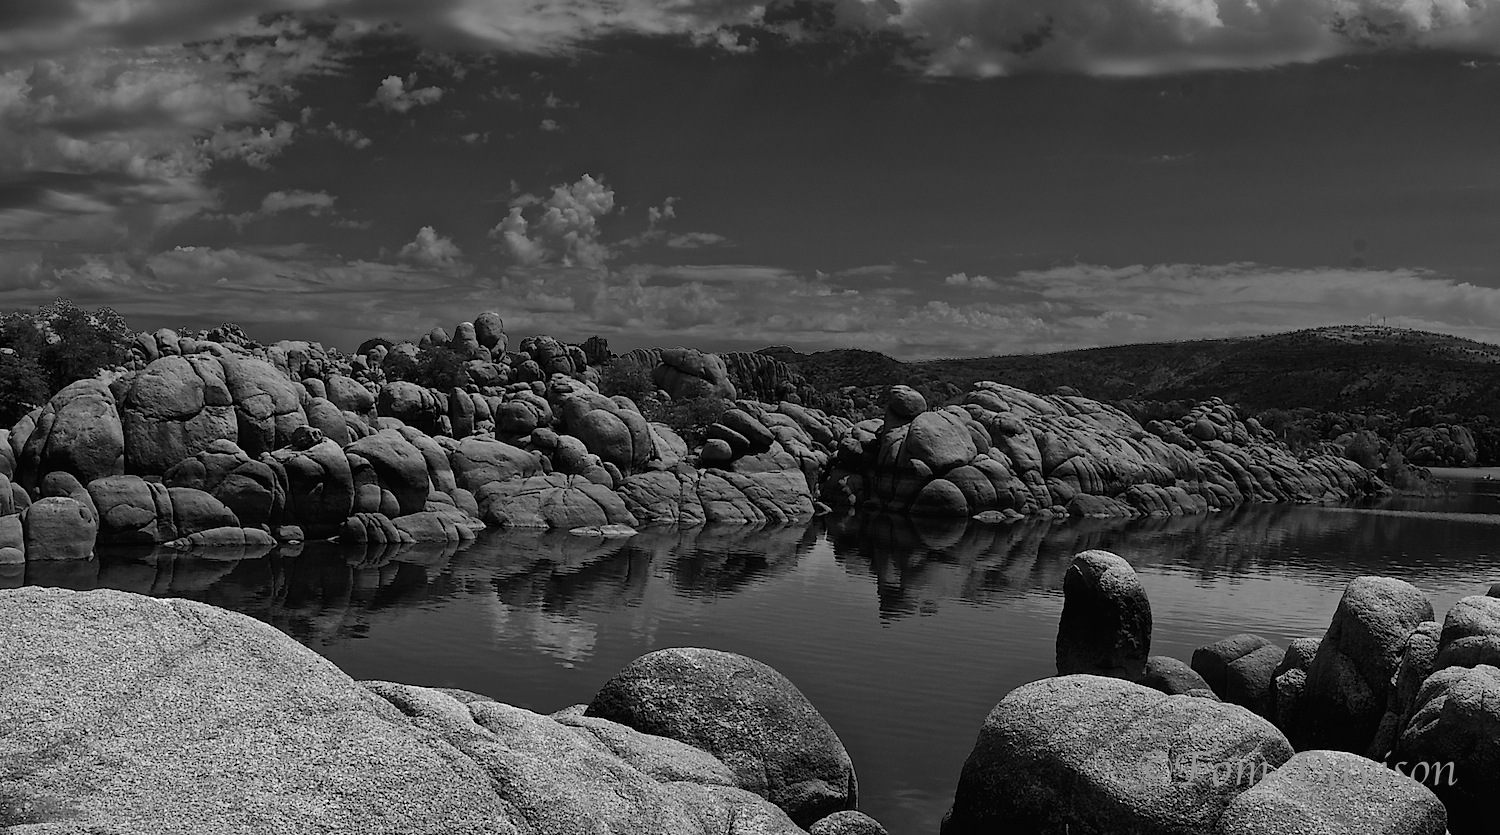 For all the color at the lake, the dynamic range and contrast suggests a B&W would work.